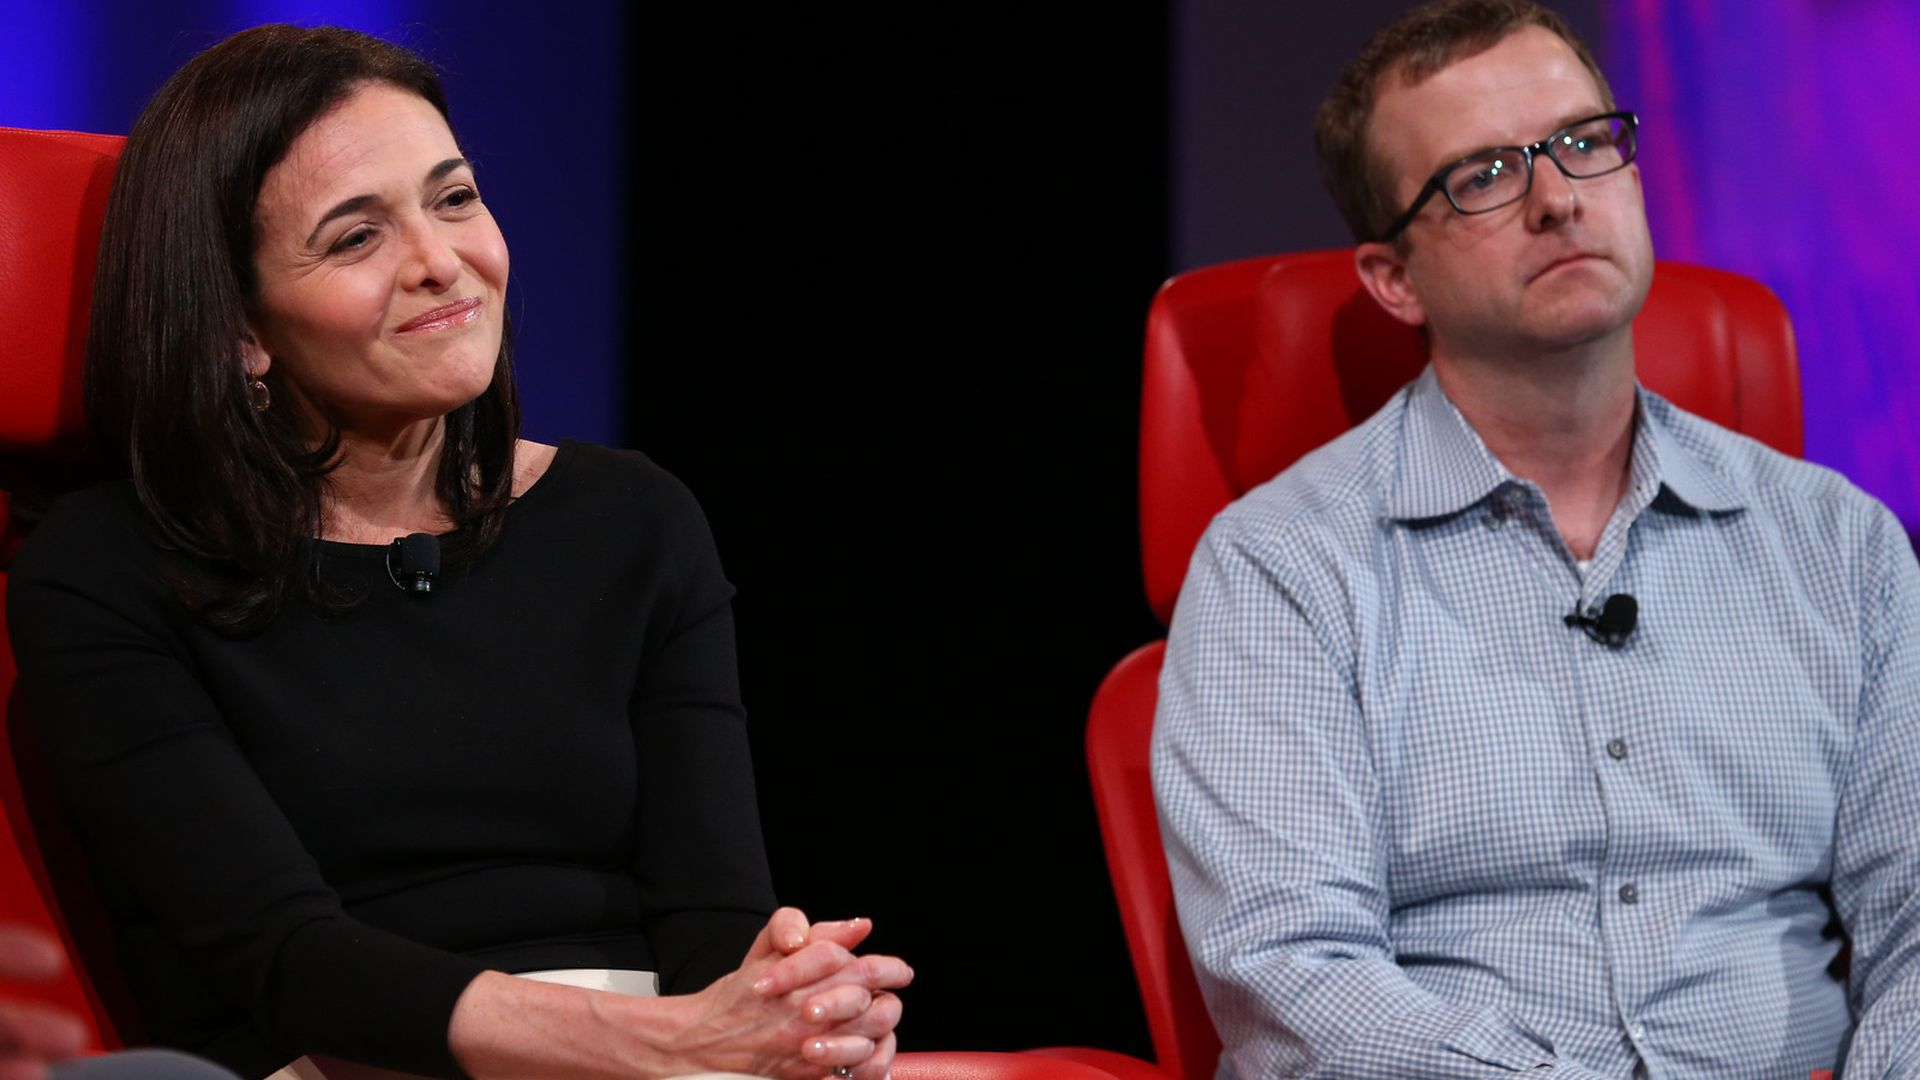 Facebook COO Sheryl Sandberg and CTO Mike Schroepfer